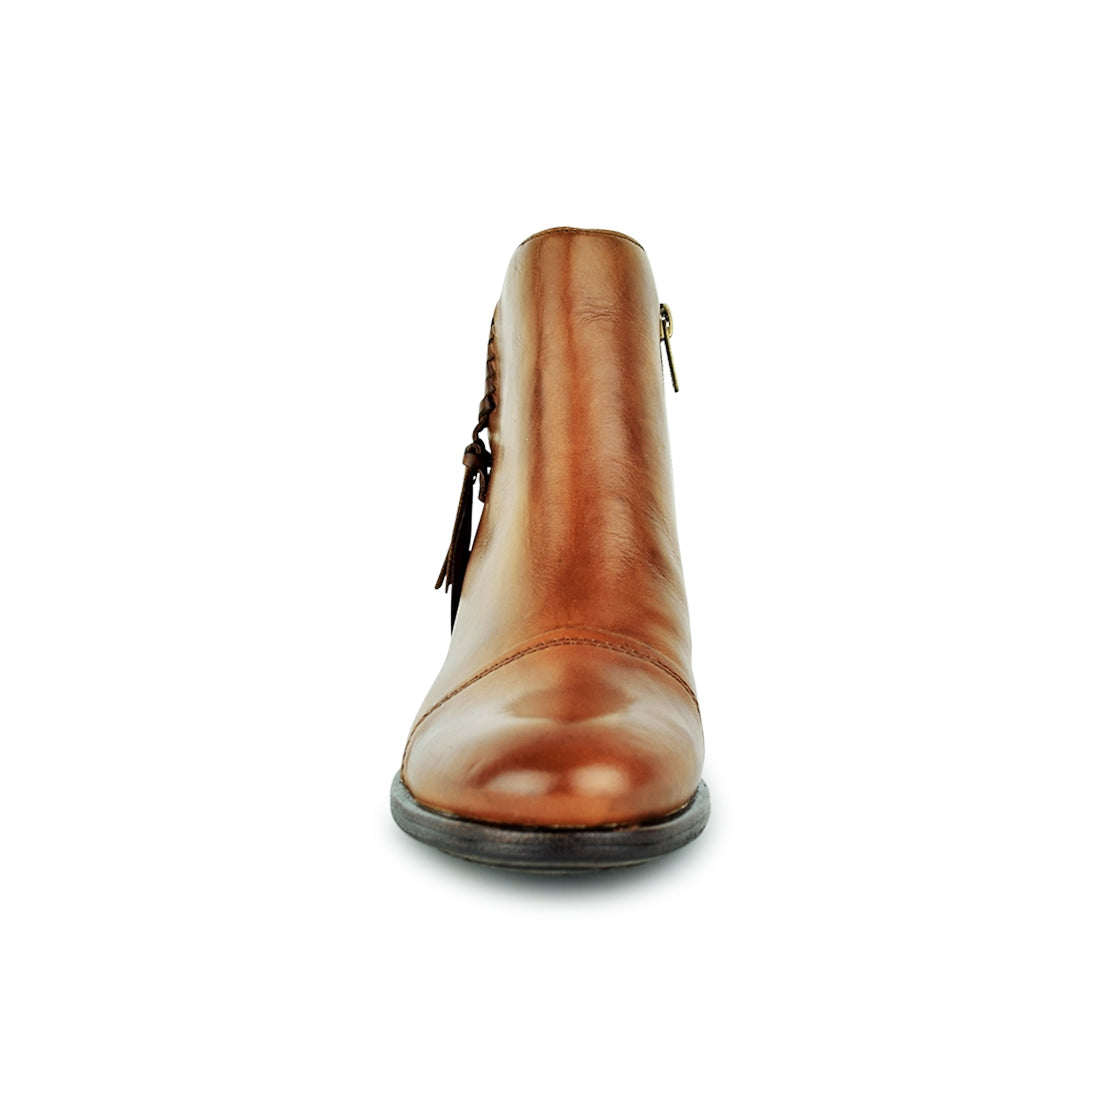 WOMAC - Pikolinos Ankle Boots Tan Rub